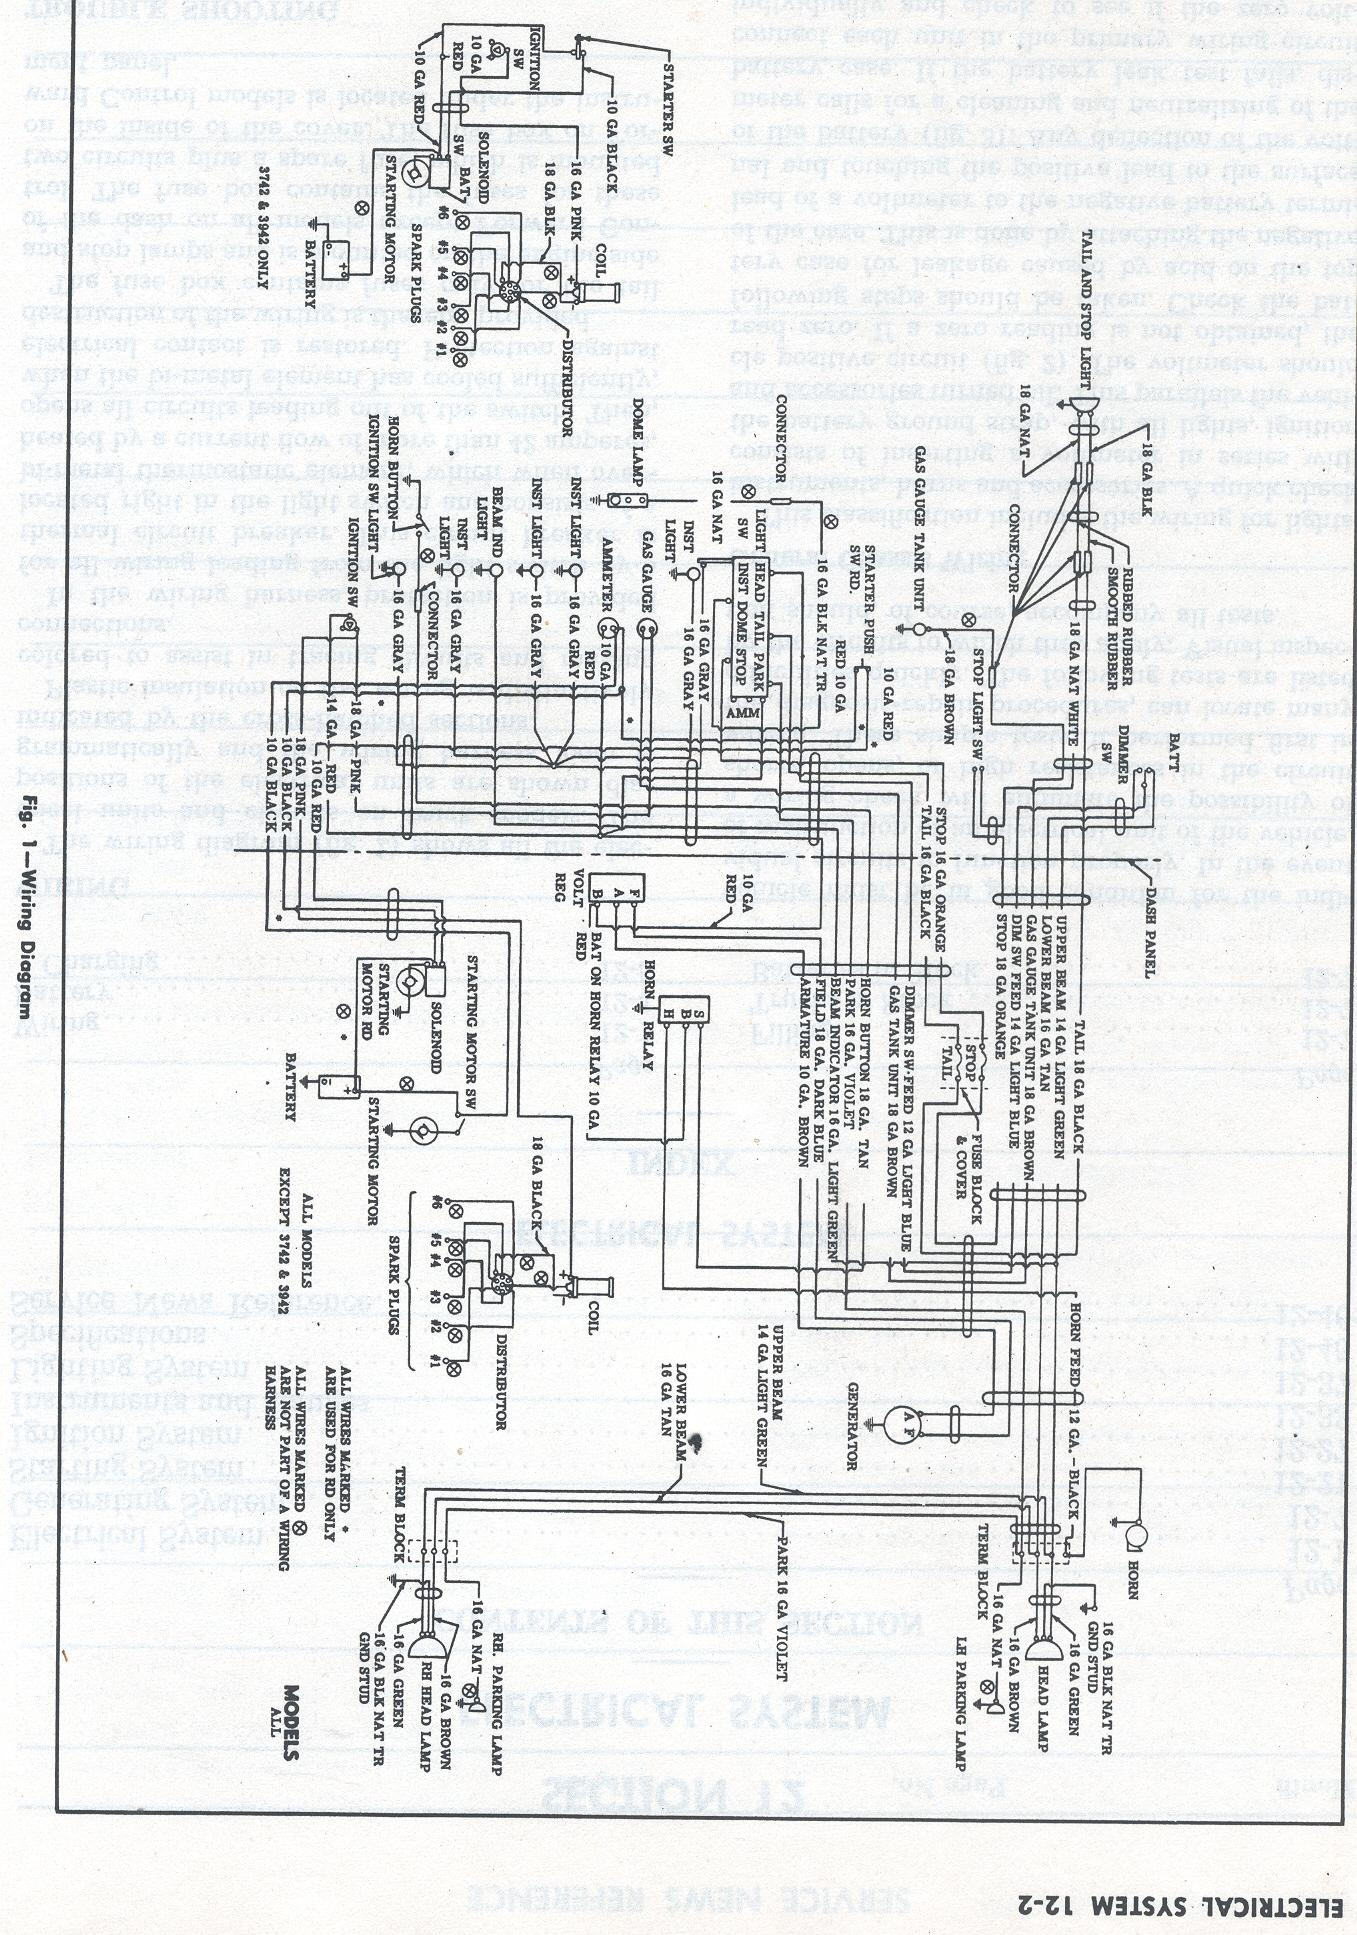 ChevyTruck 1954Shop_Manual Wiring?resize\\\\\\\=665%2C948 wiring diagram 1968 m715 m38a1 wiring diagram, humvee wiring m715 wiring diagram at soozxer.org